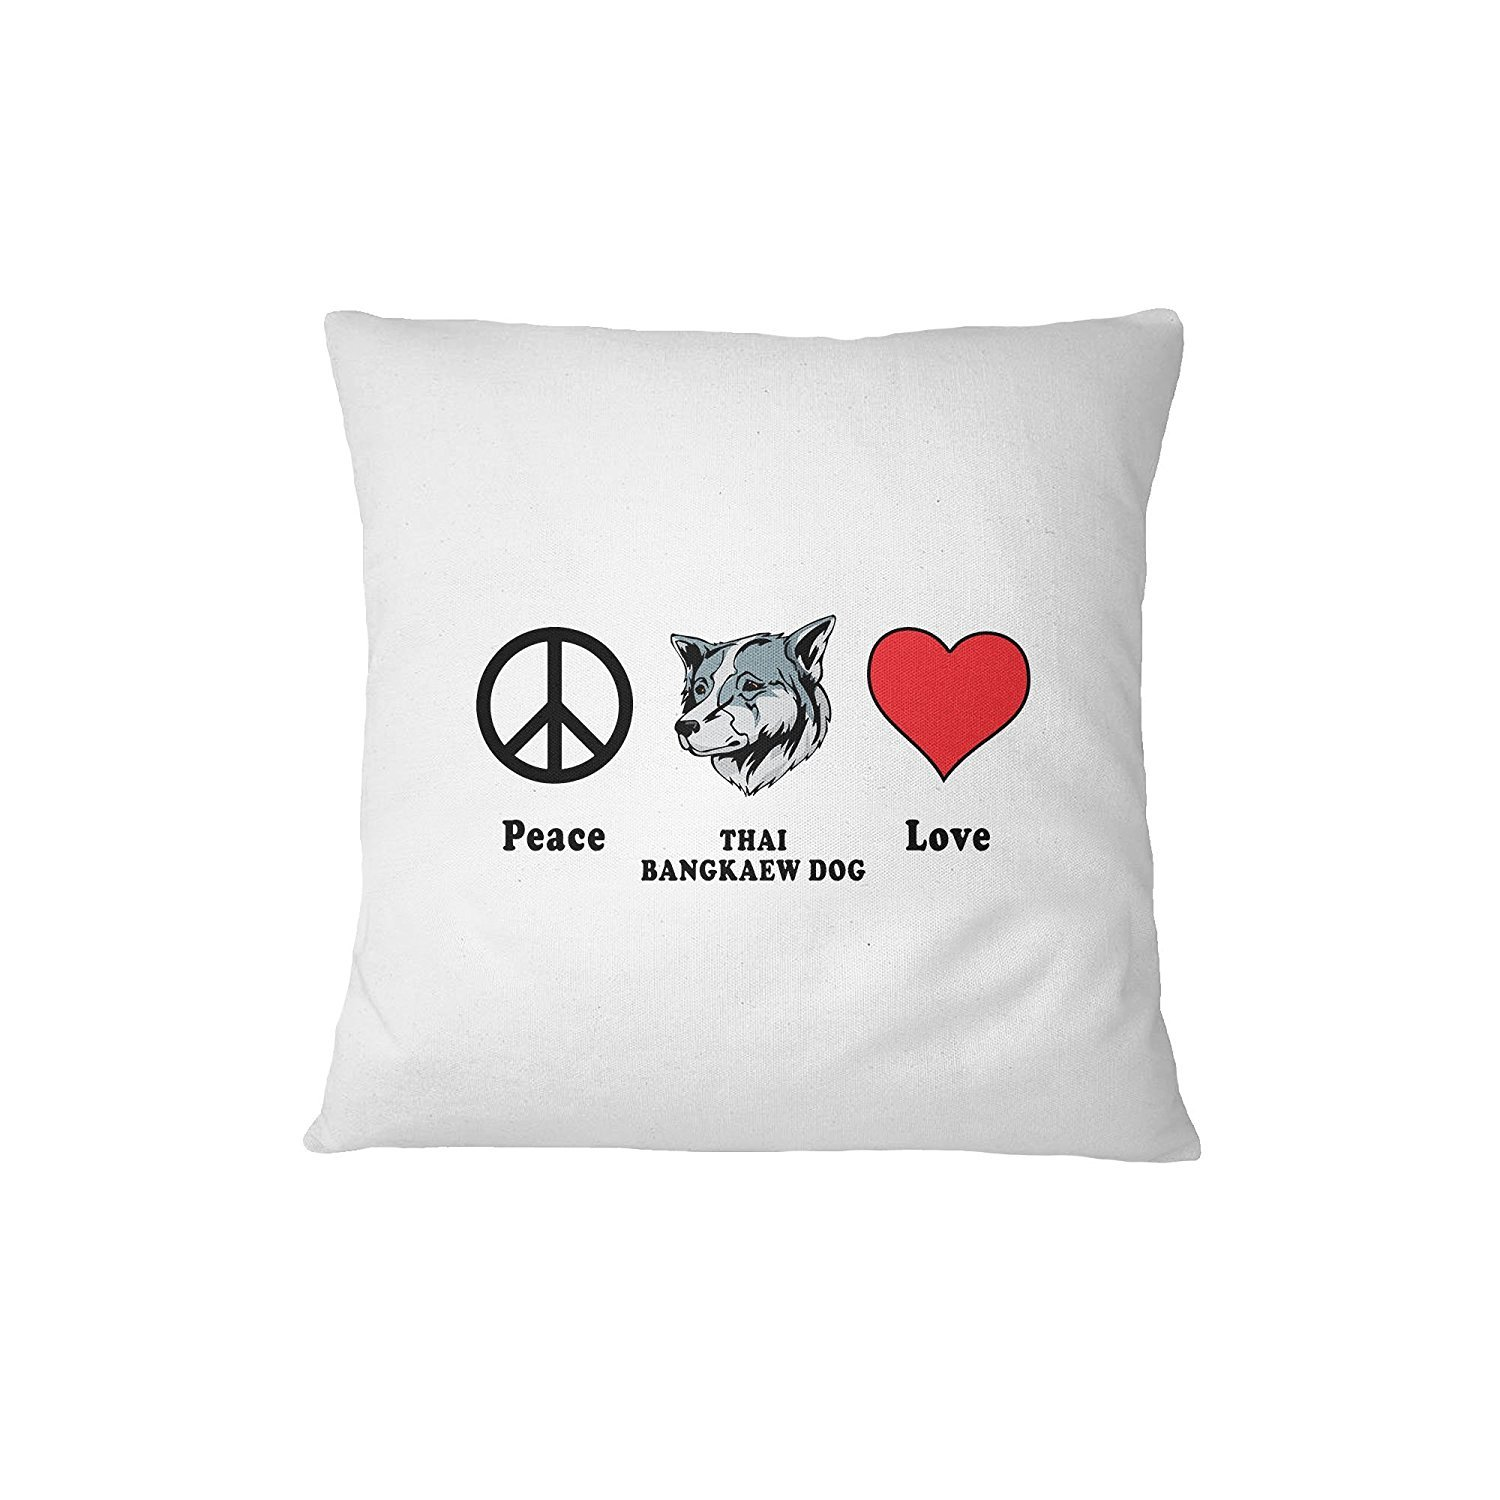 THAI BANGKAEW DOG Peace Love Sofa Bed Home Decor Pillow Cover Cover Only ArtsLifes by ArtsLifes